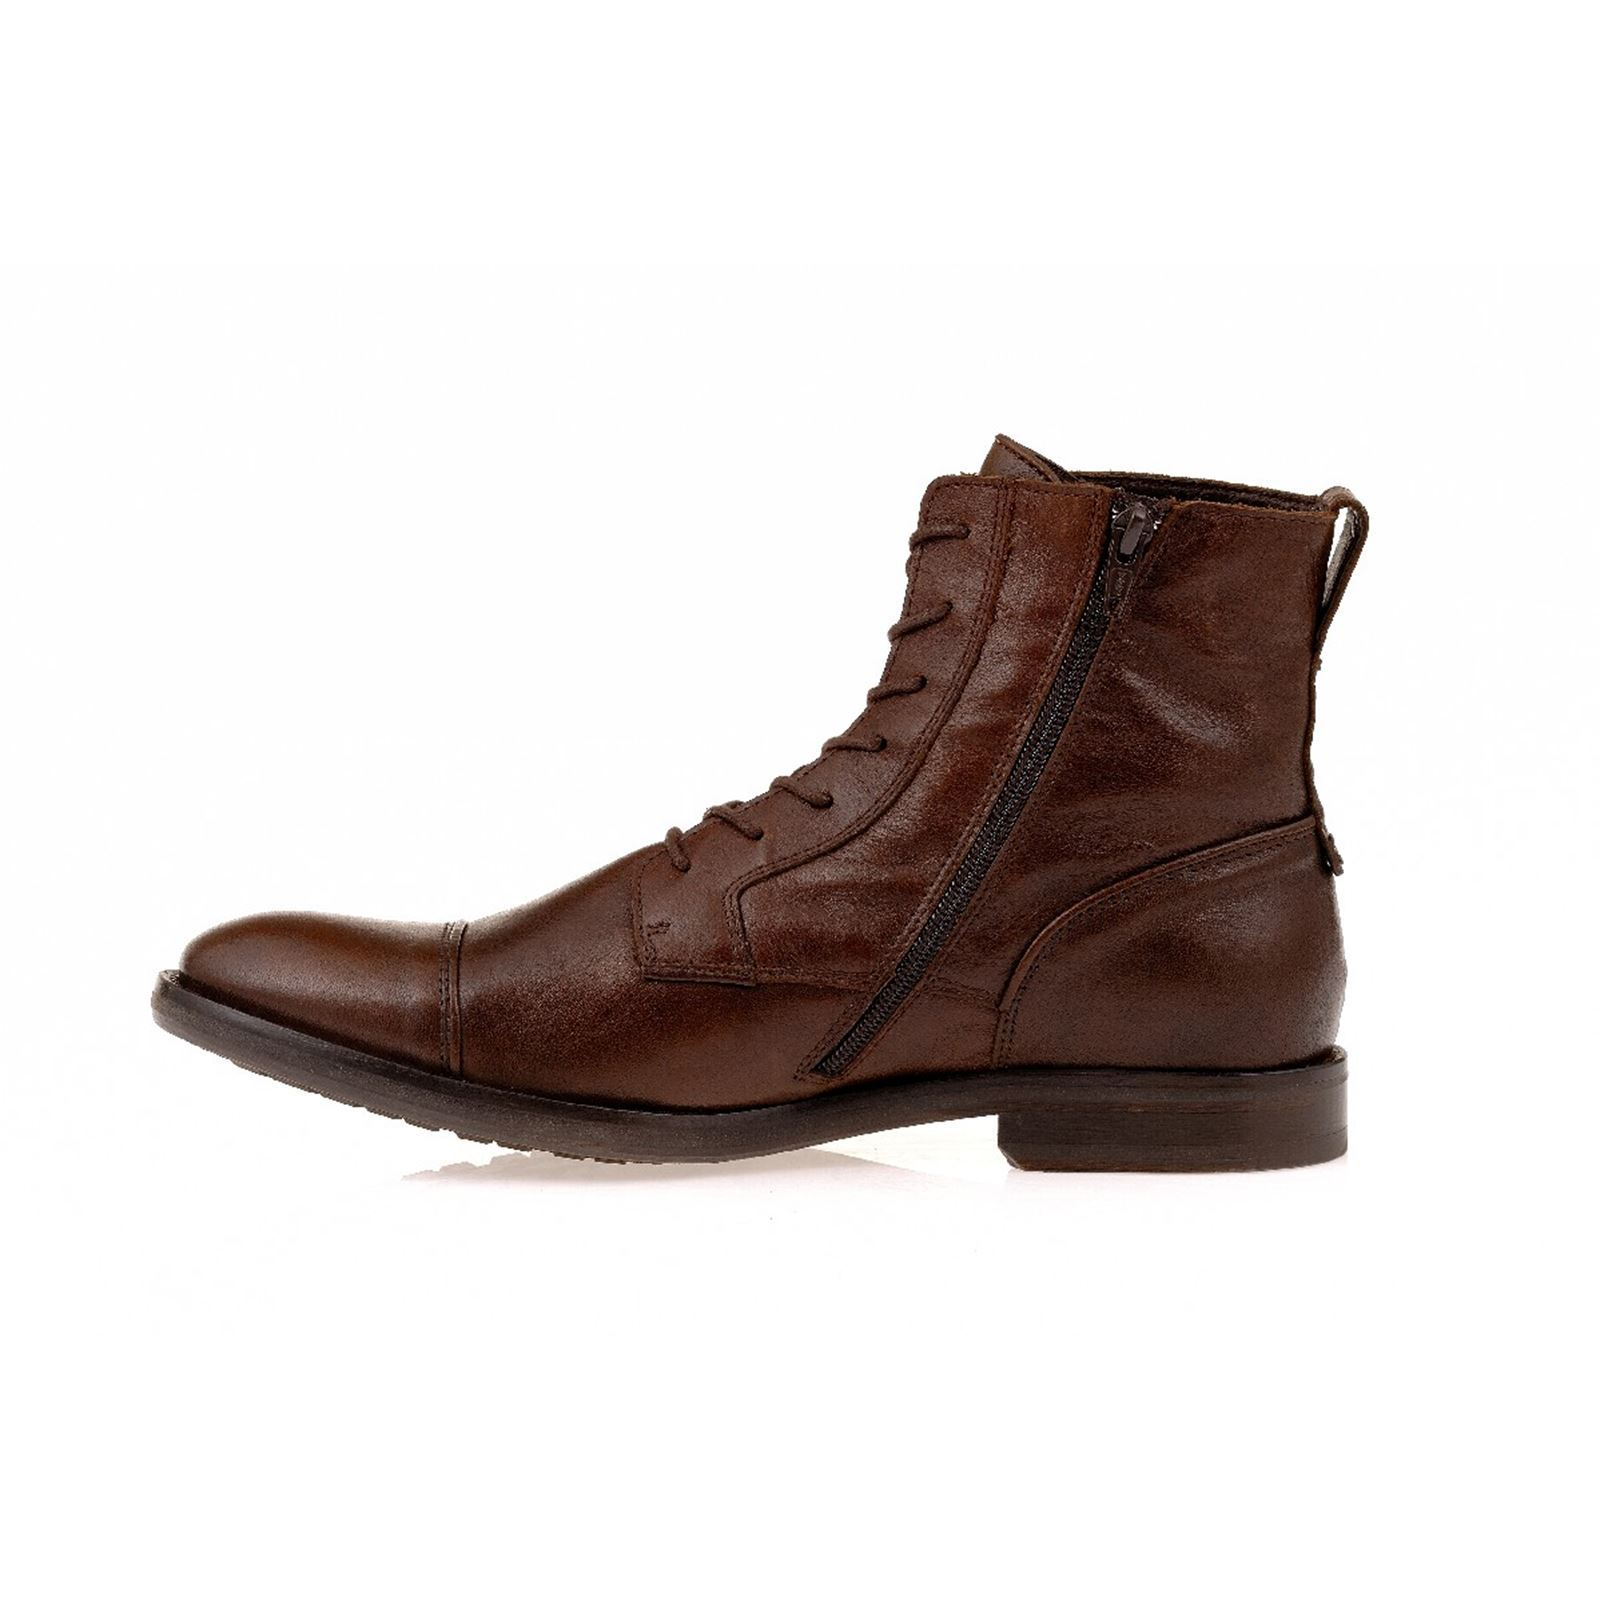 Monderer Carnaby - Bottines en cuir - marron